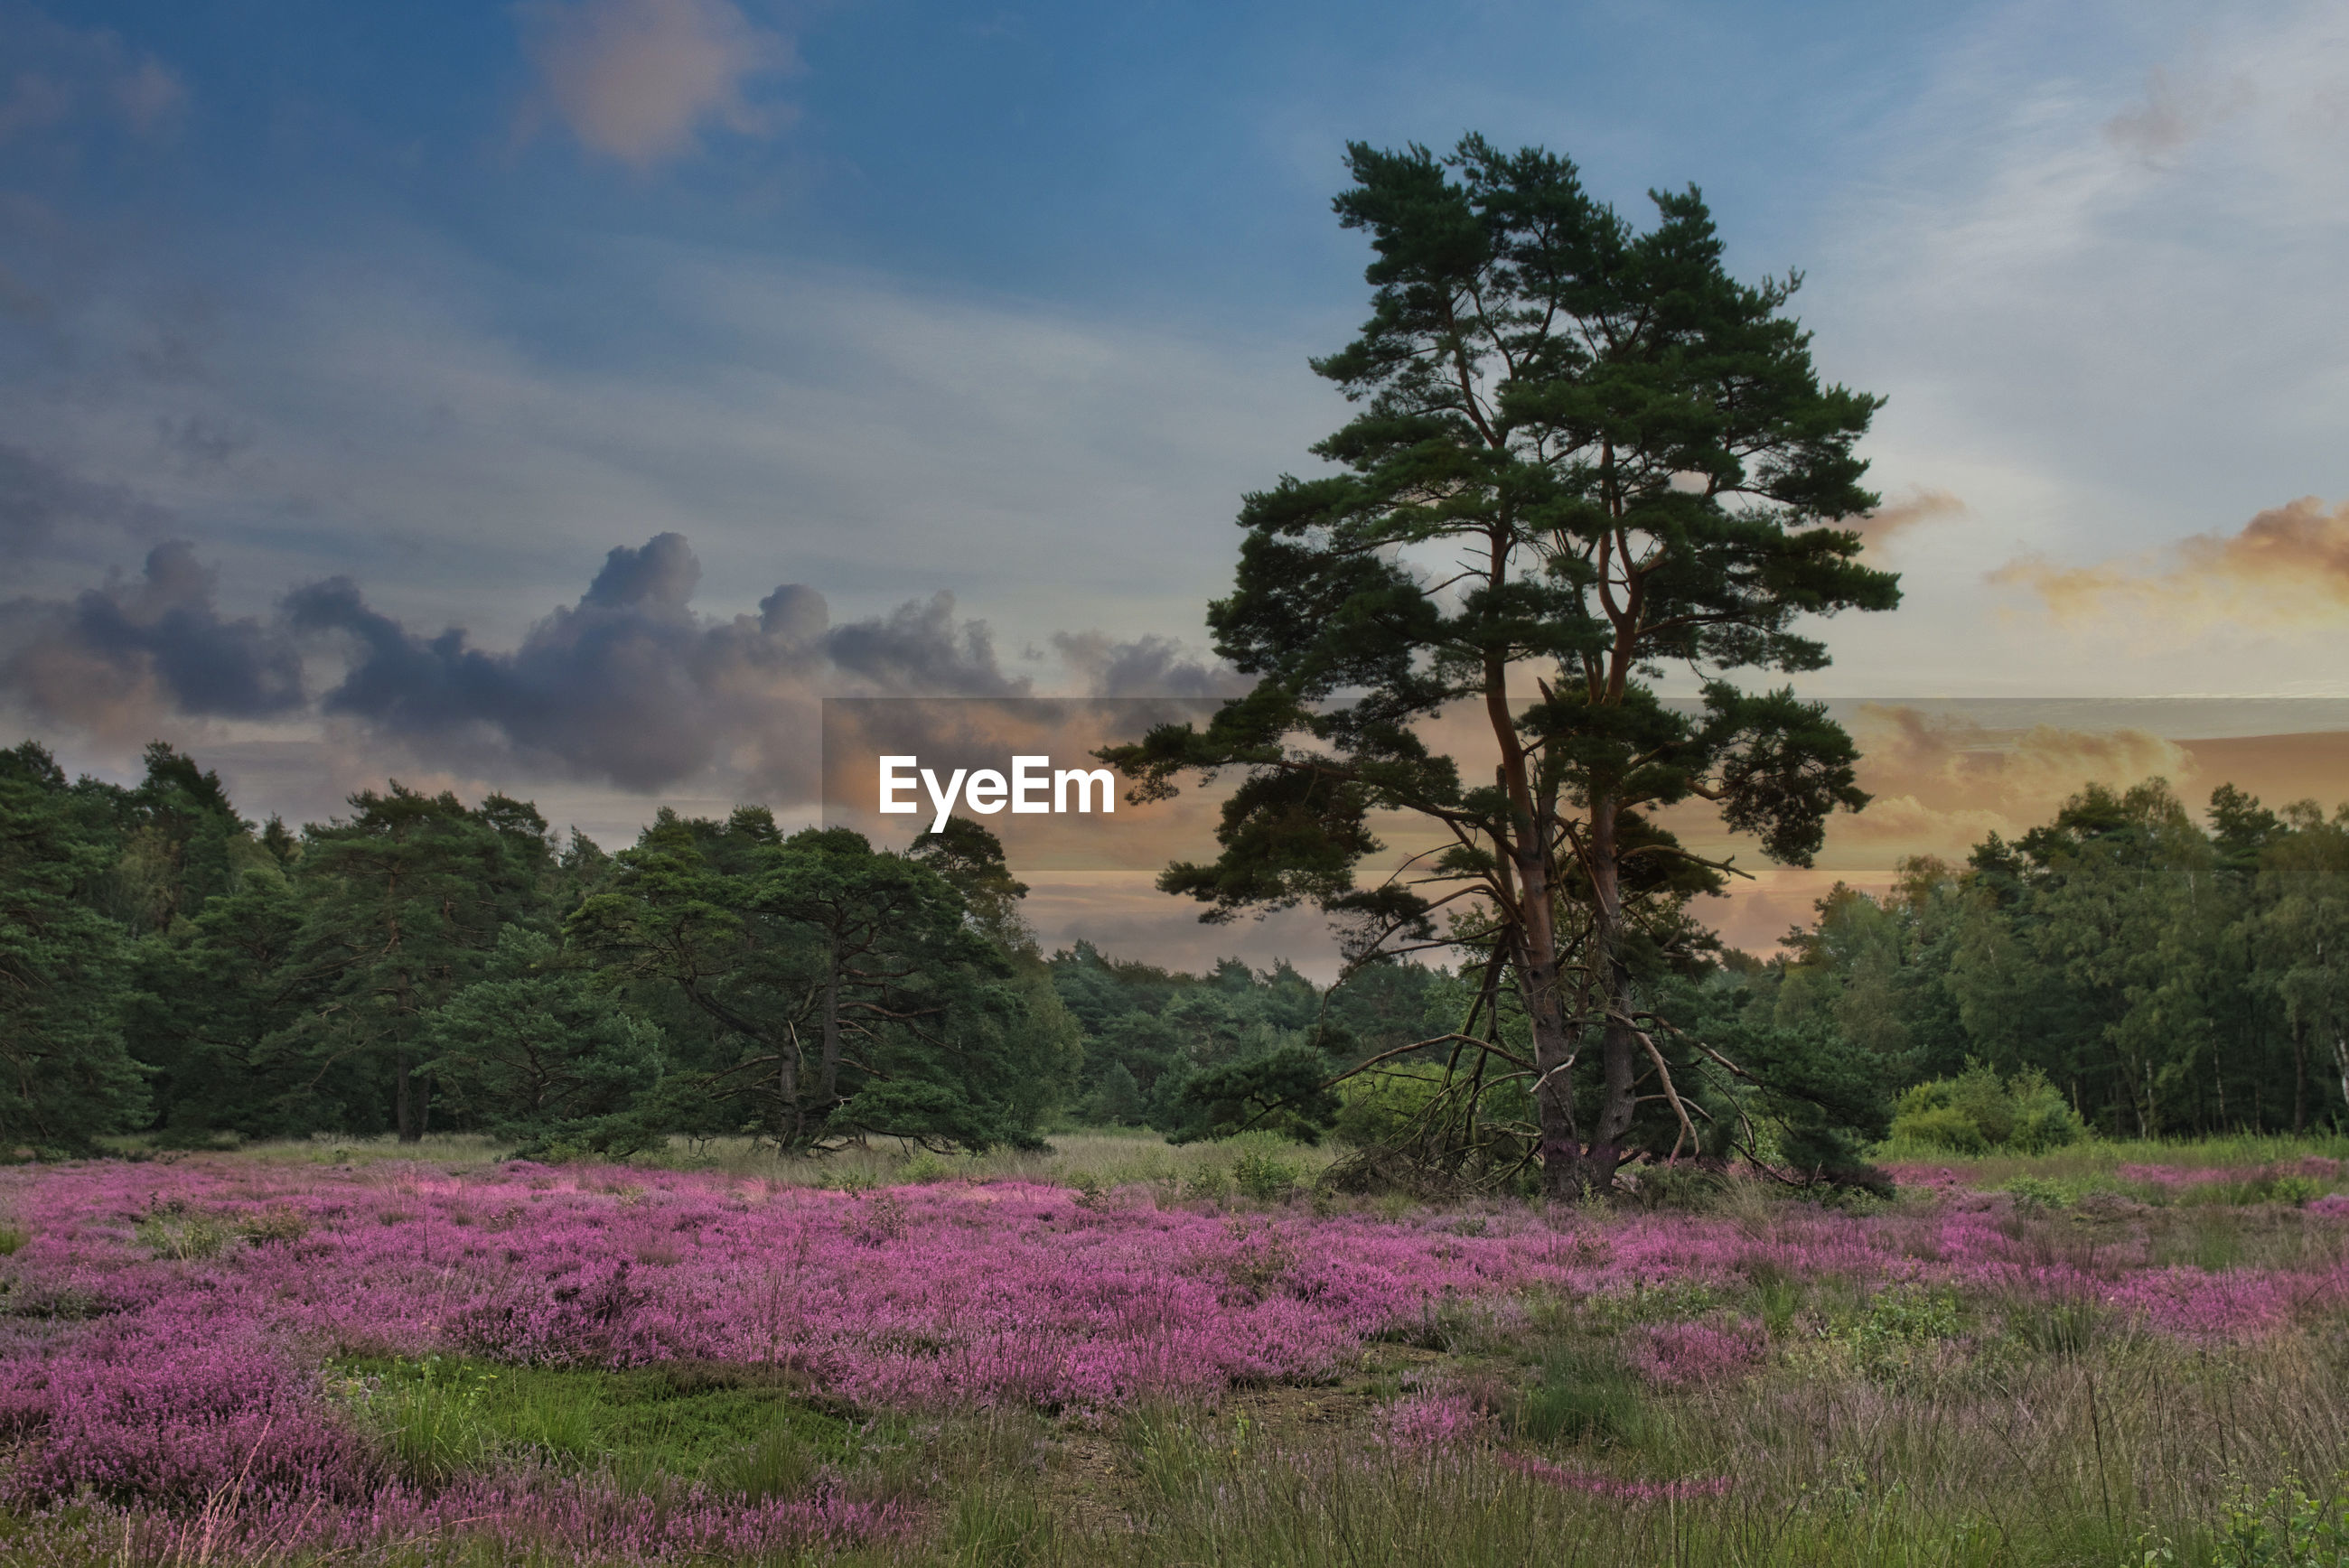 SCENIC VIEW OF PURPLE FLOWERING PLANTS ON LAND AGAINST SKY